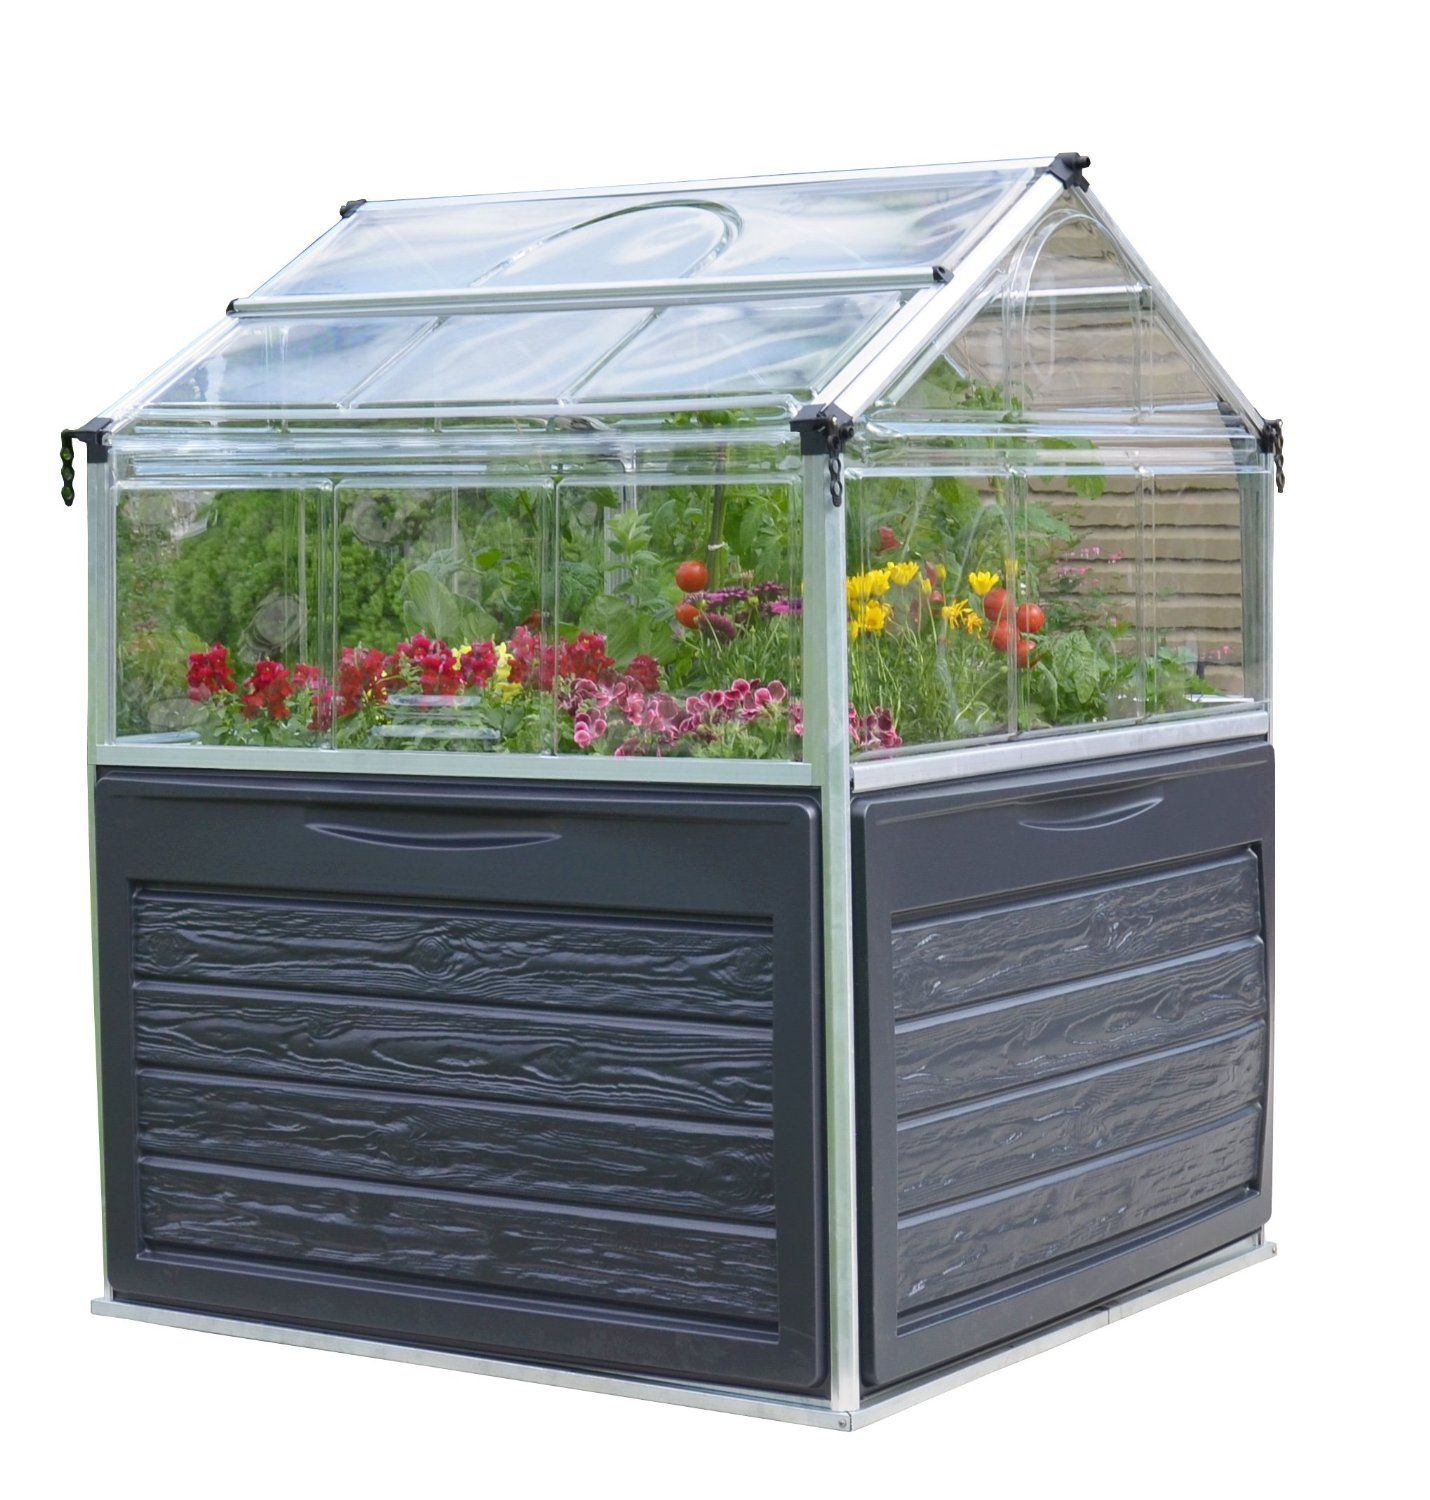 Palram Plant Inn Raised Garden Bed * Discover this special